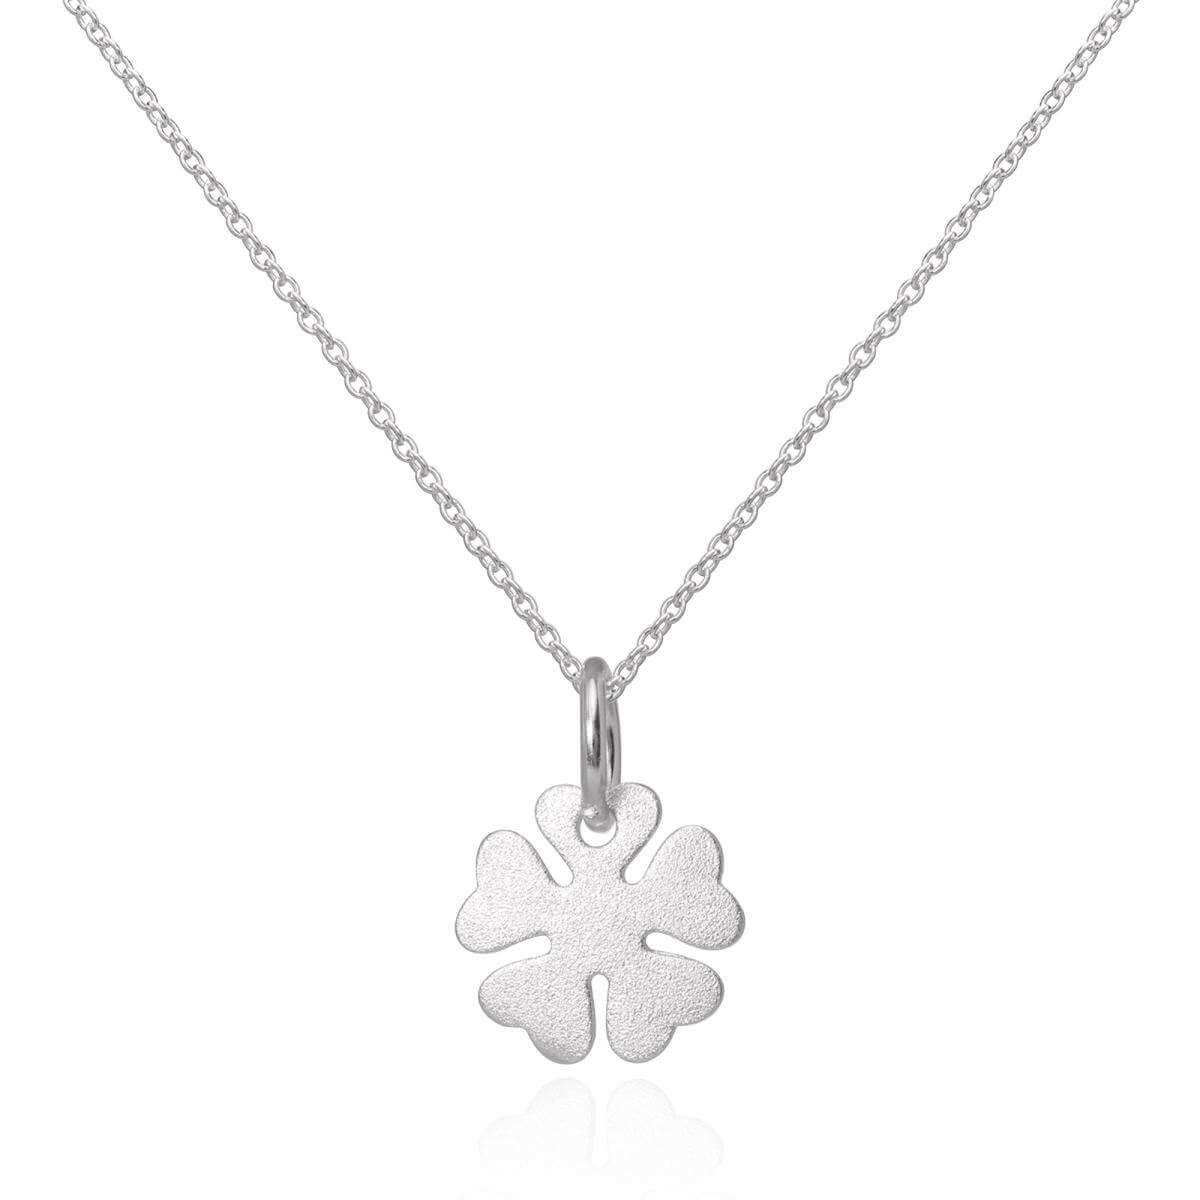 Brushed Sterling Silver Lucky 4 Leaf Clover Pendant Necklace 16 - 22 Inches